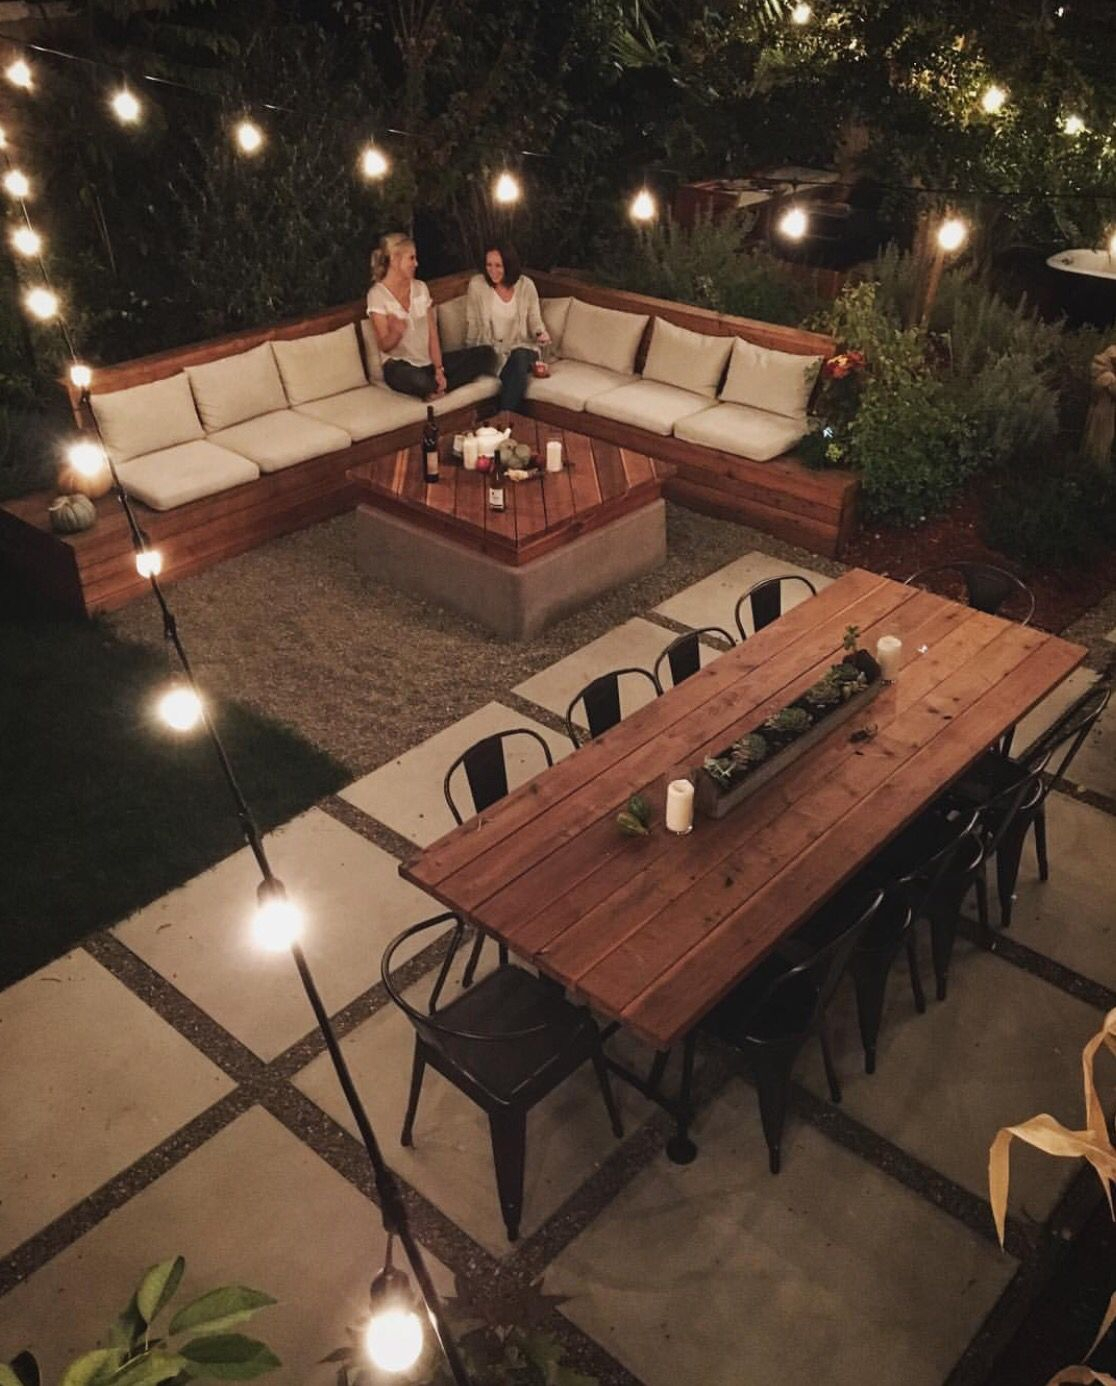 Awesome Backyard Idea Cant Forget The Sectional Table And pertaining to 15 Awesome Initiatives of How to Craft Awesome Backyard Ideas